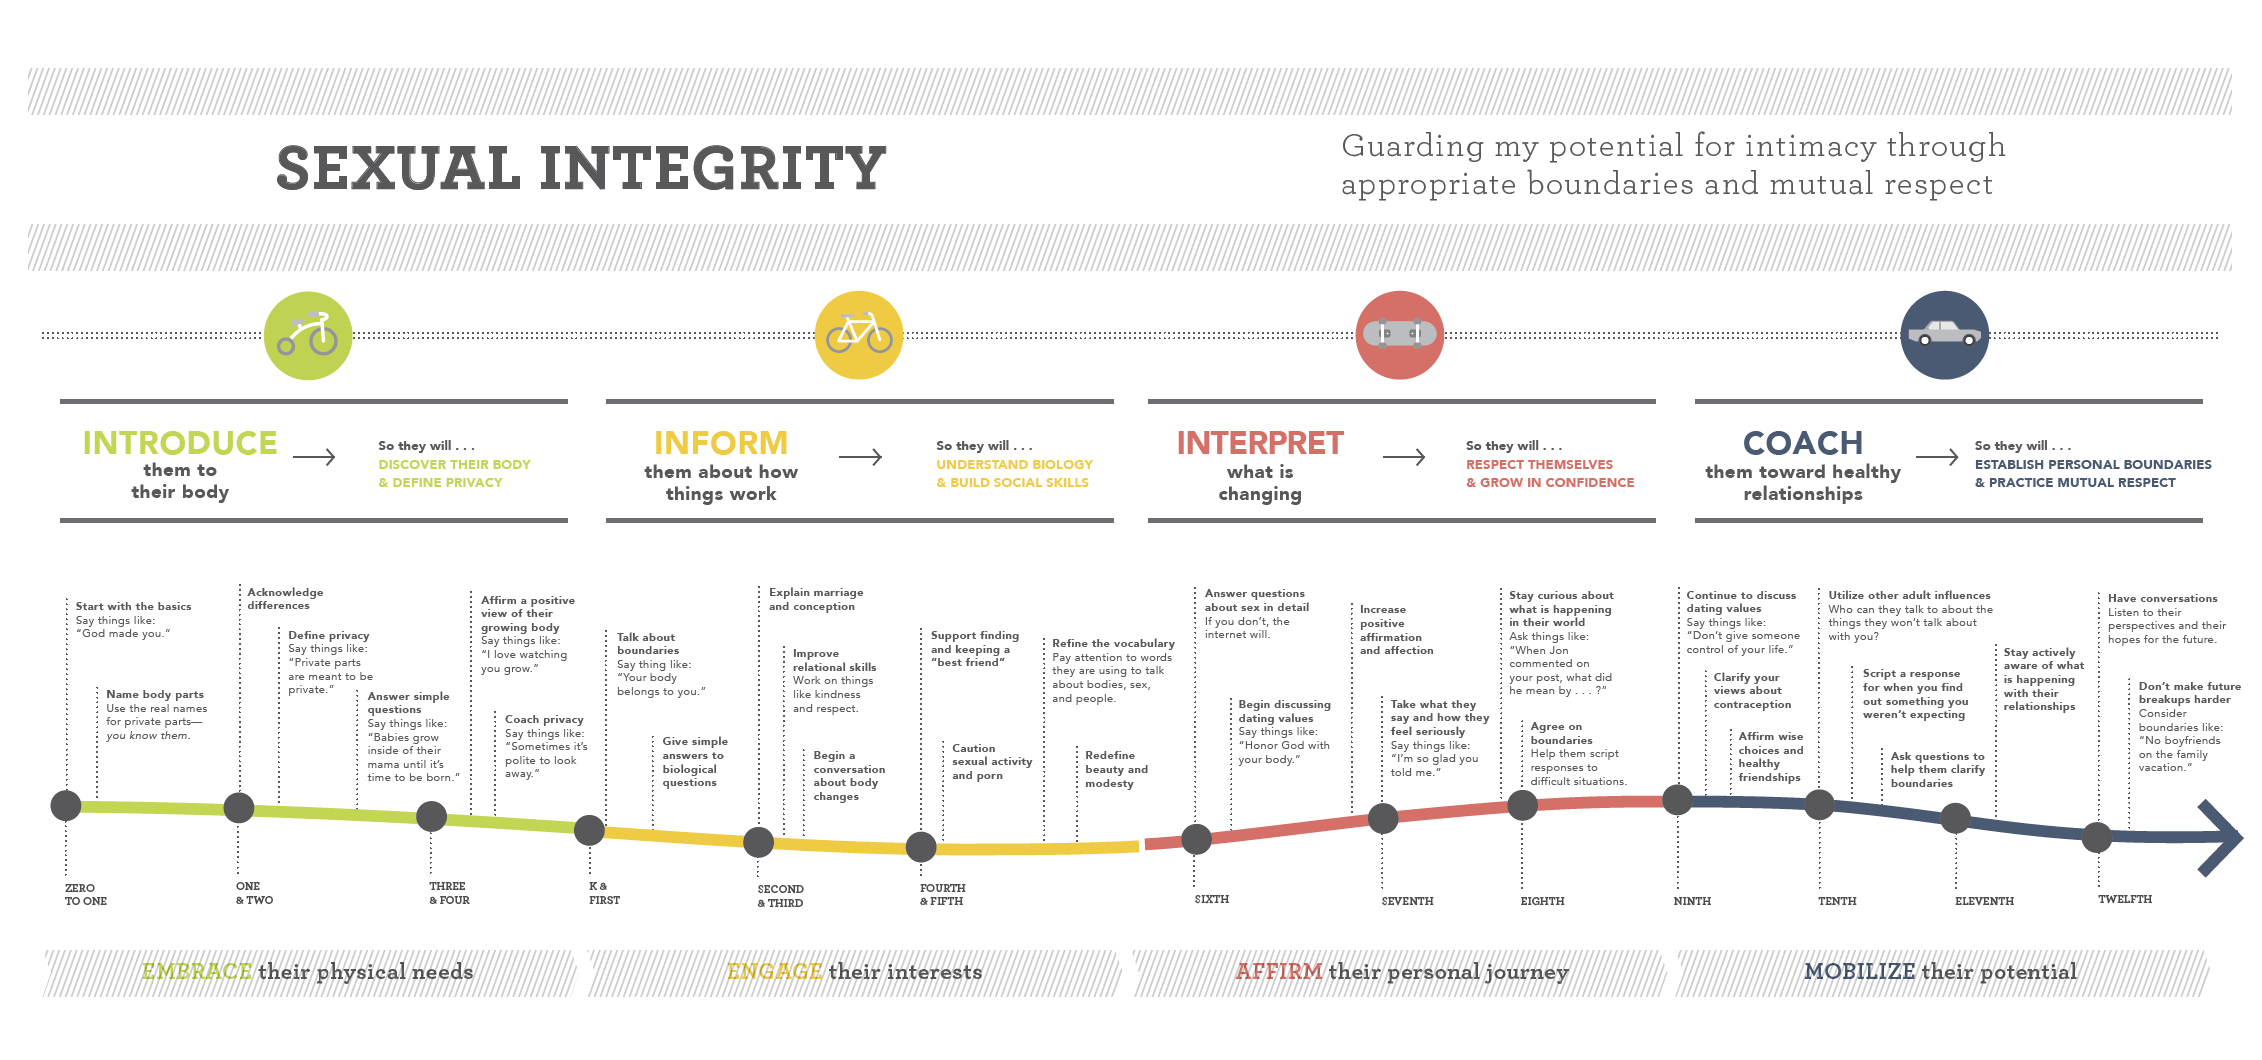 Sexual Integrity Timeline - Free Download